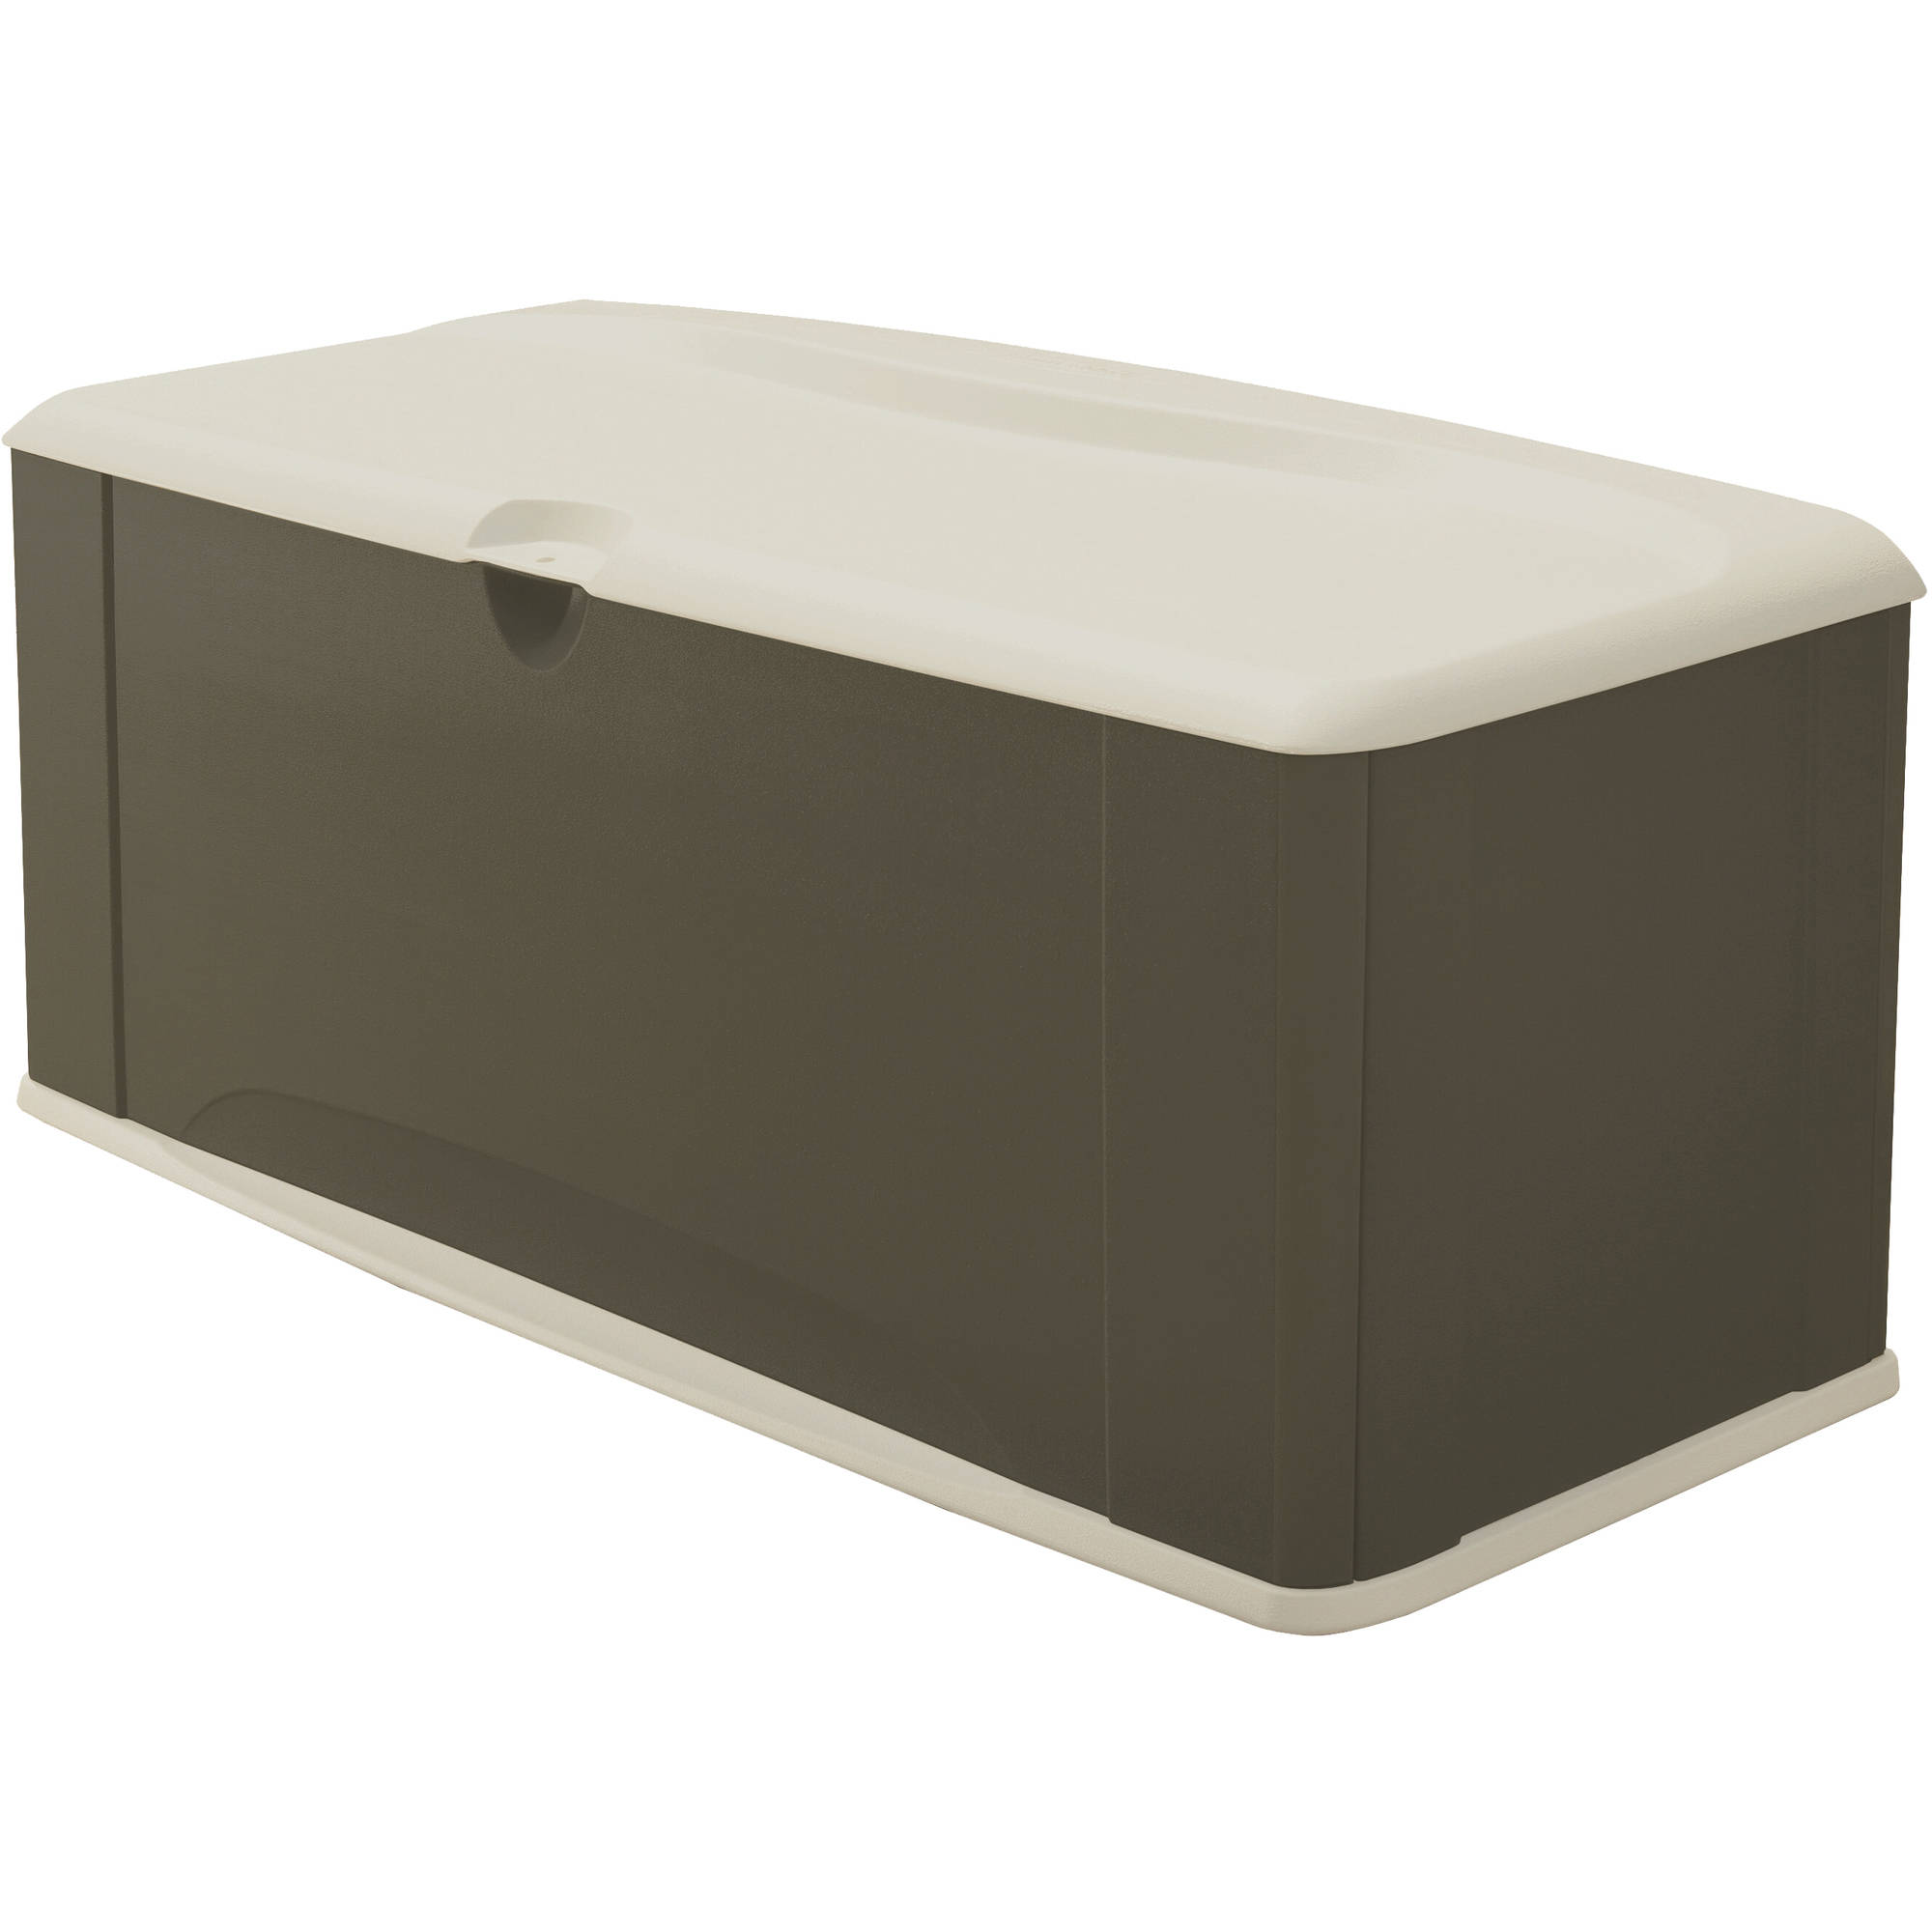 Deck Box with Seat | Rubbermaid Patio Chic | Rubbermaid Storage Bench